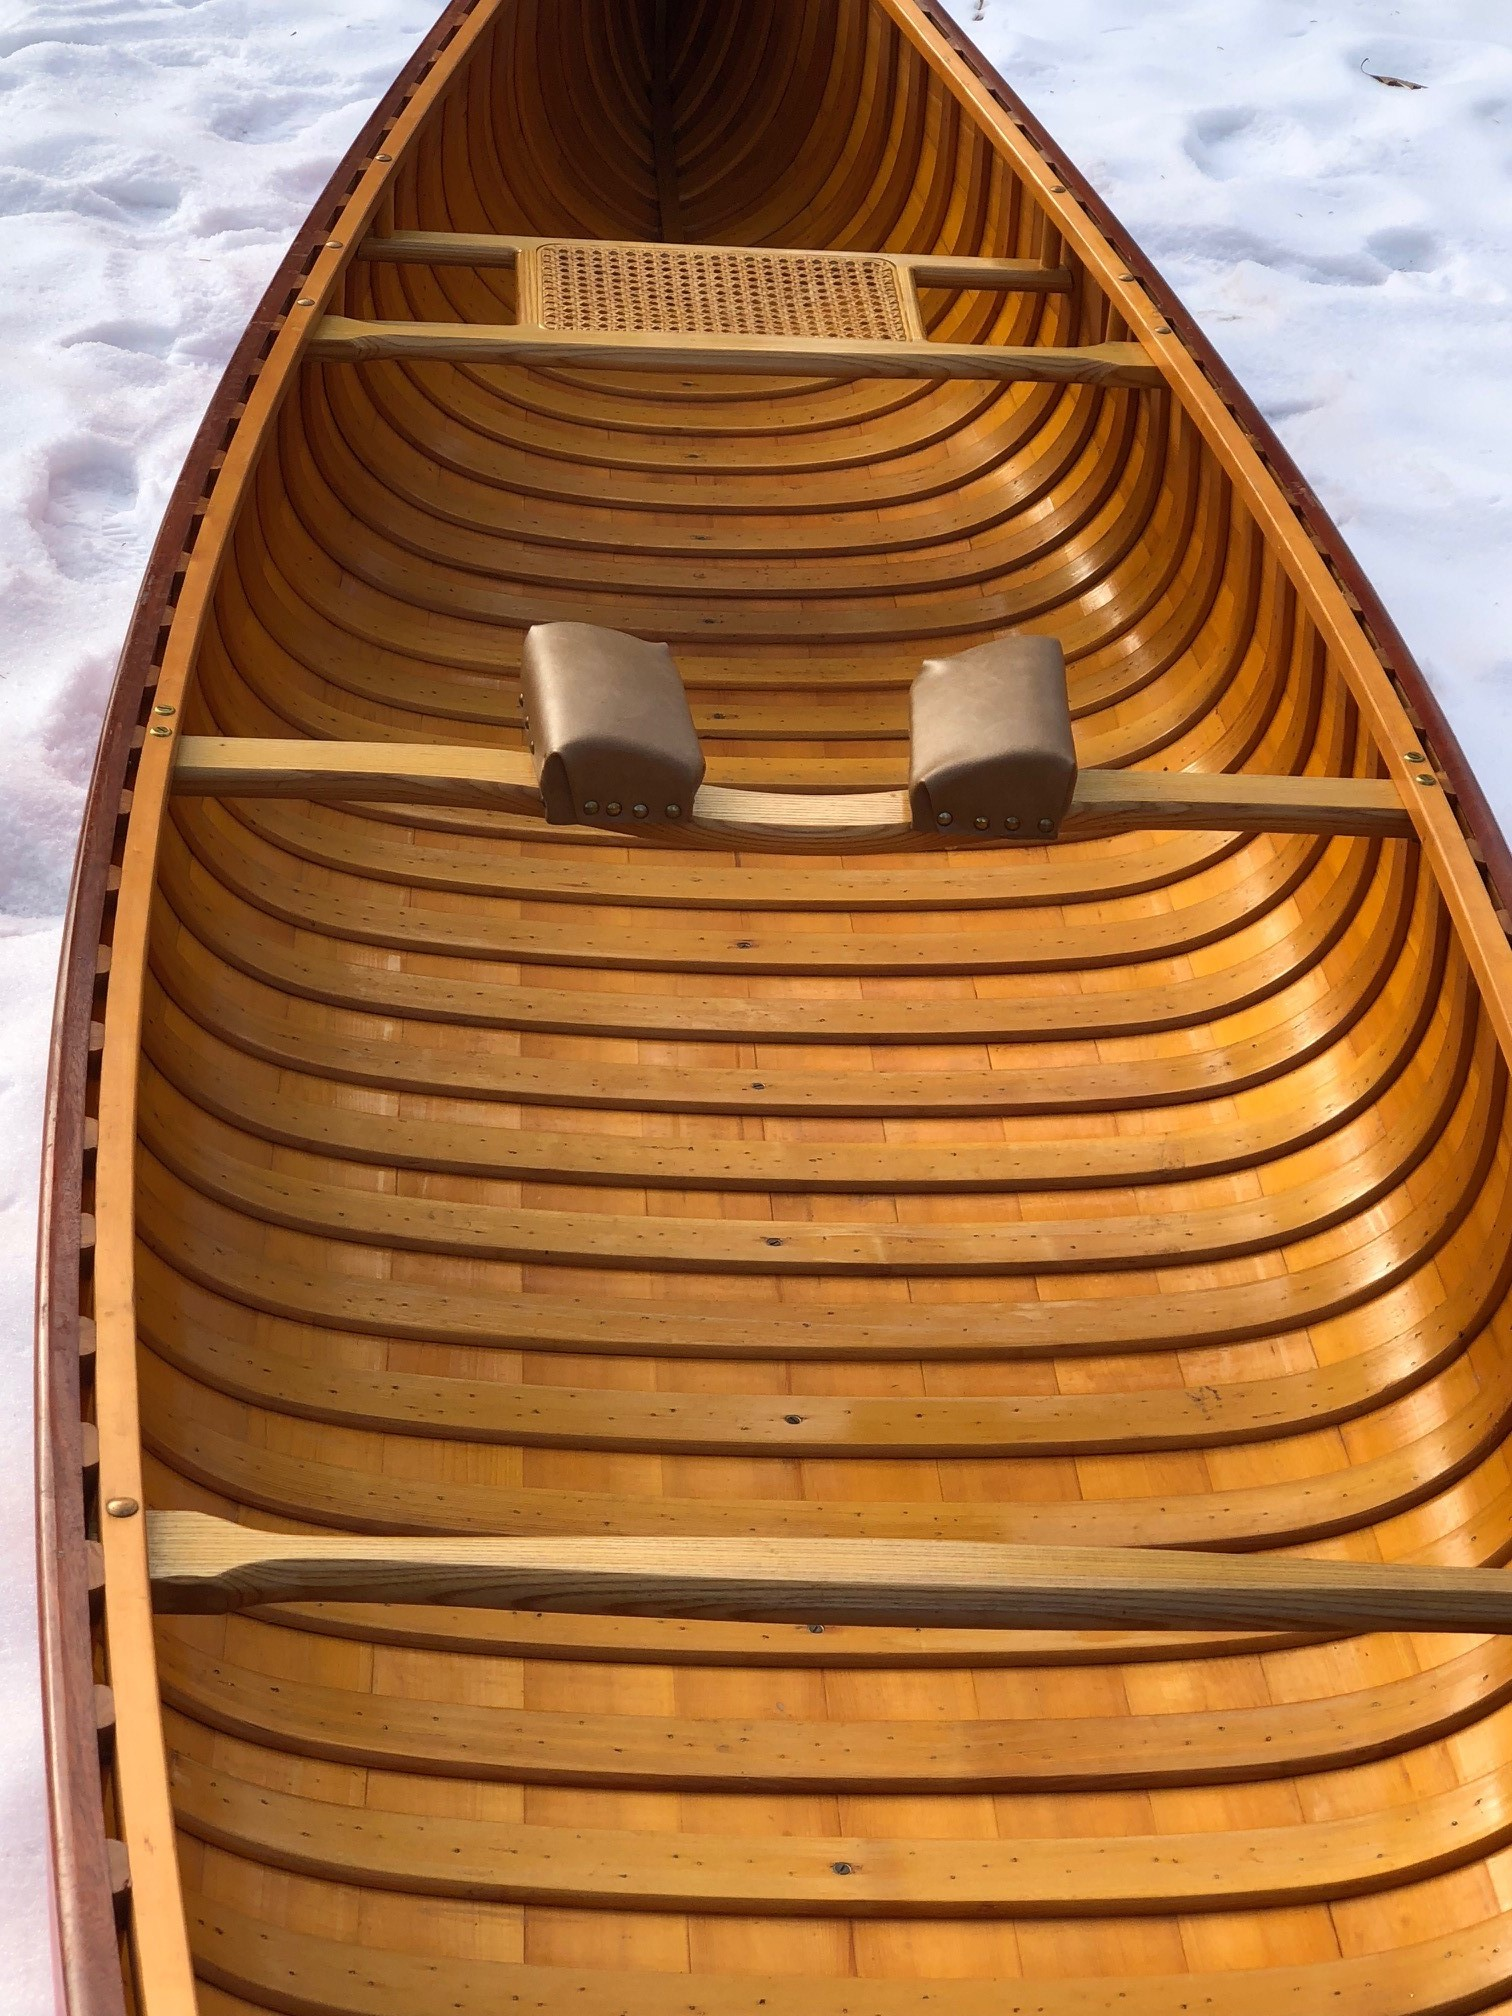 Used Canoes and Kayaks